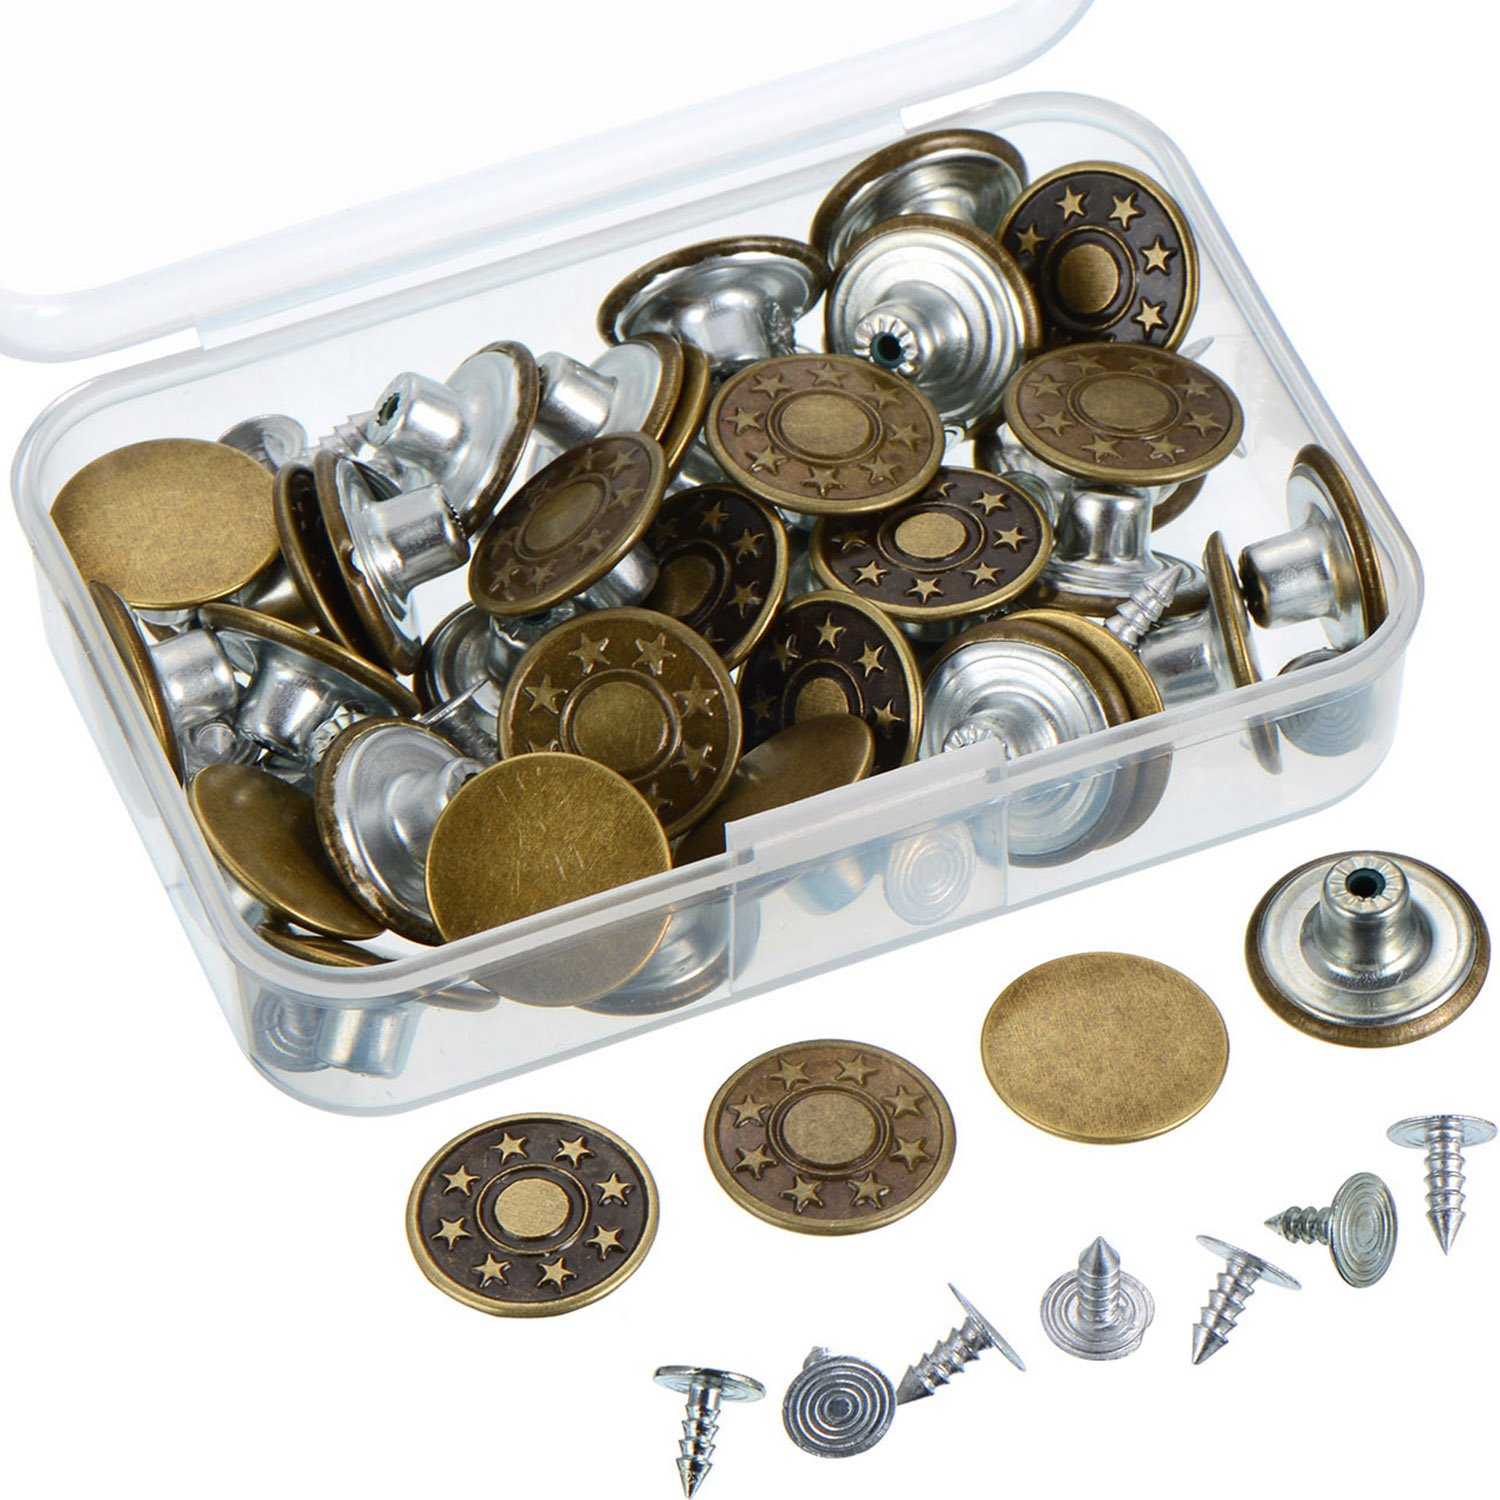 Outus 40 Sets Jeans Button Tack Buttons Metal Replacement Kit with Storage Box, 2 Styles, Bronze 4337005975